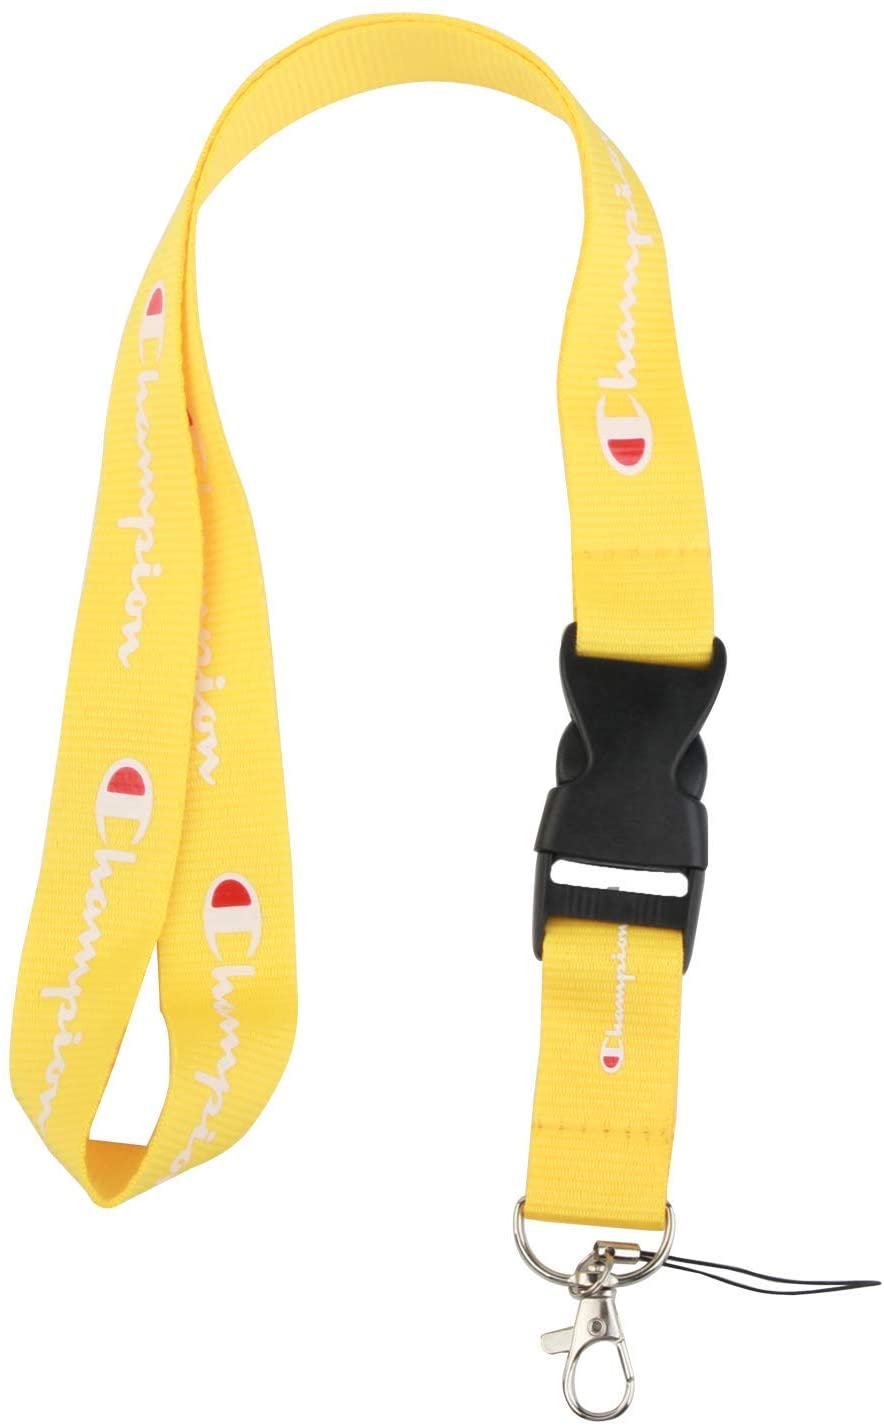 Champion Lanyard Keychain Holder for Phones ID Badge holer Bags Neck Lanyard (Yellow)